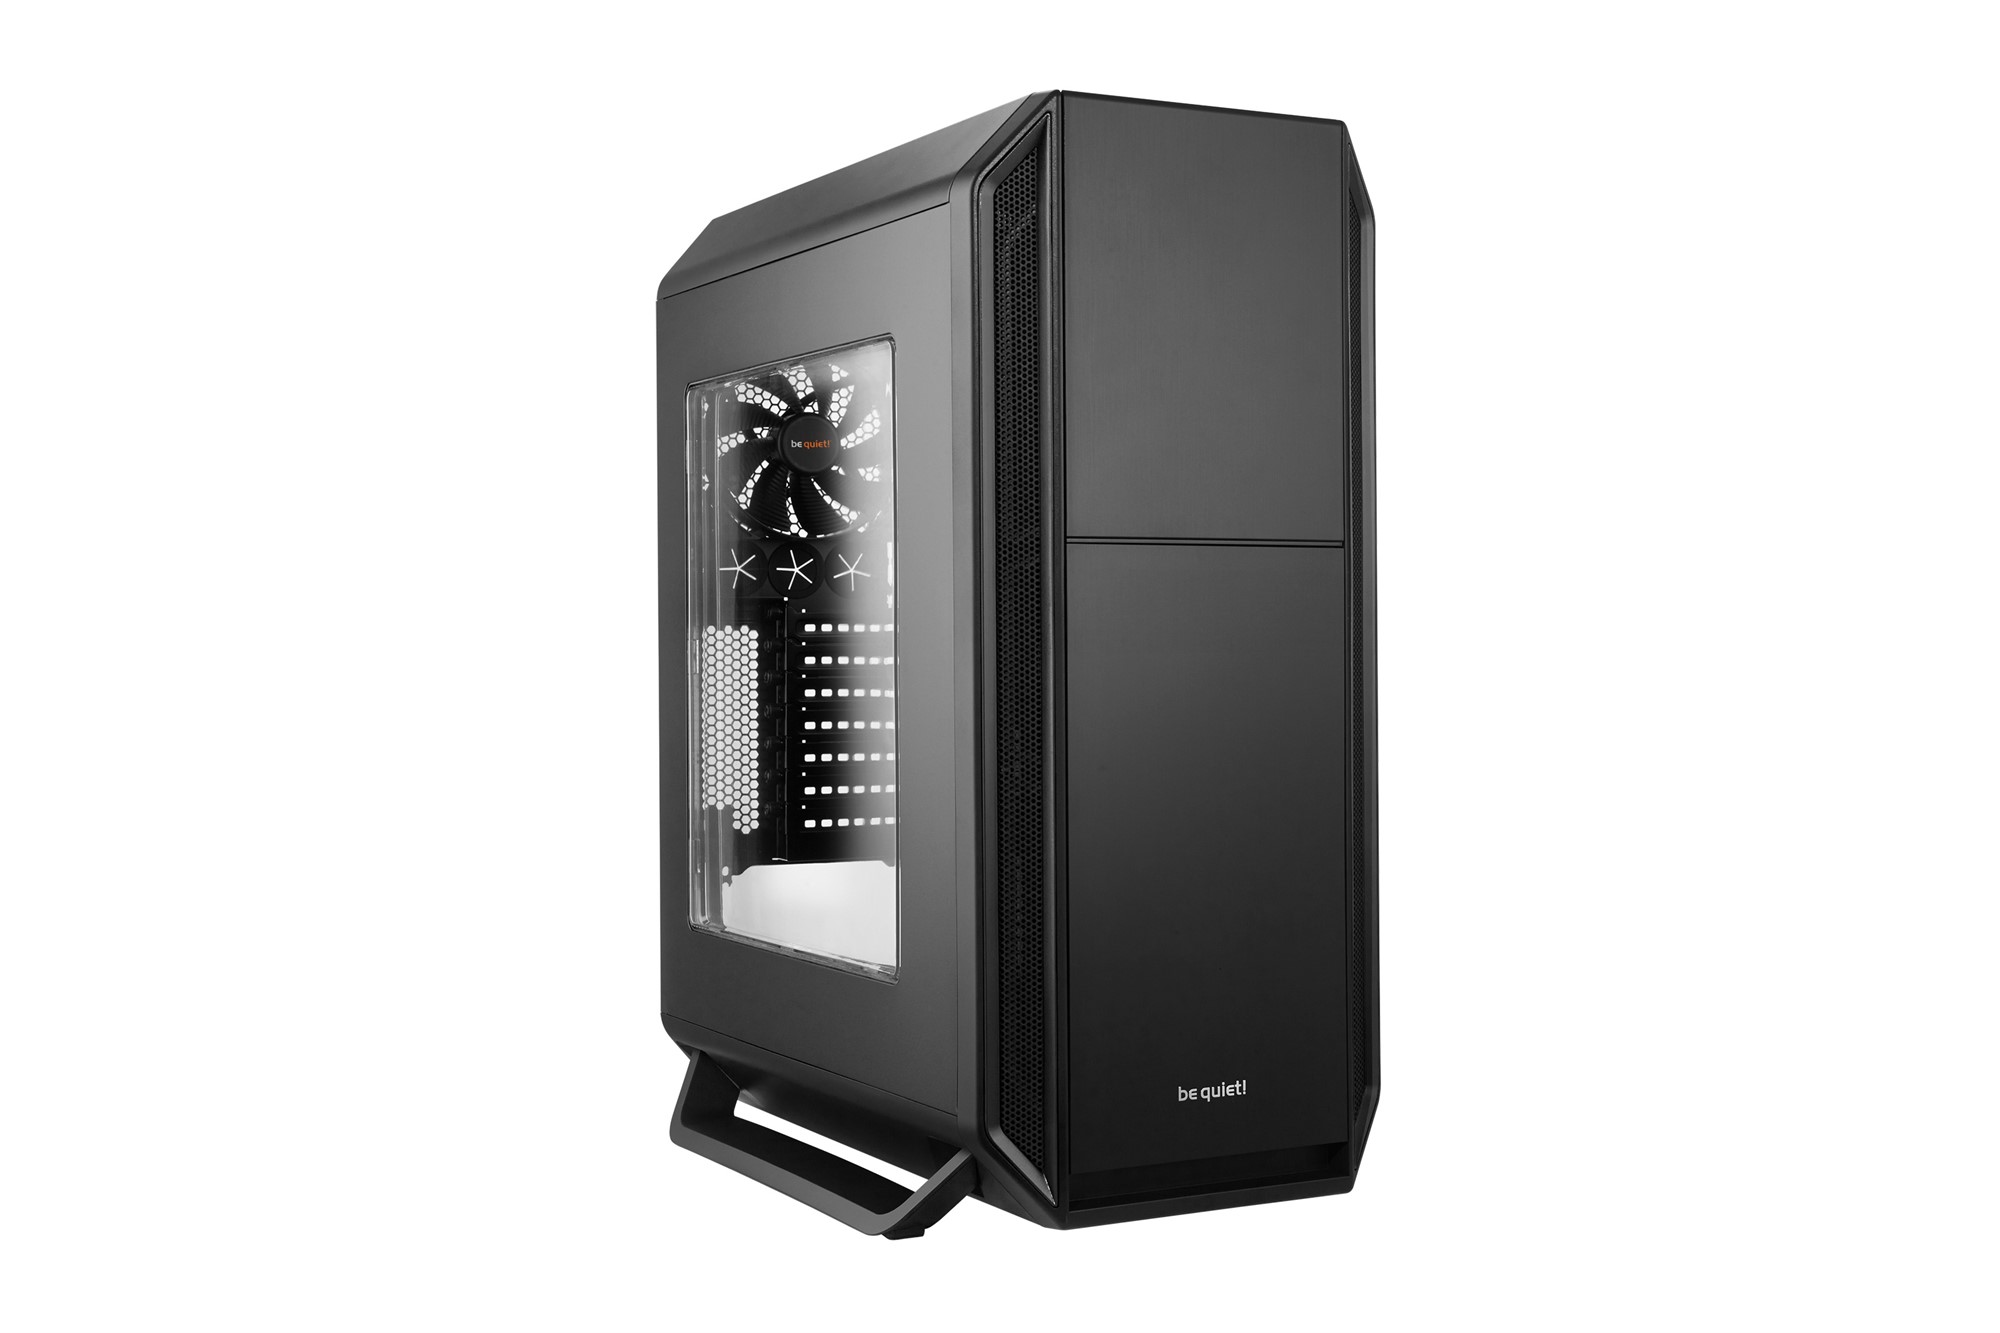 BE QUIET! BGW02 SILENT BASE 800 TOWER BLACK COMPUTER CASE